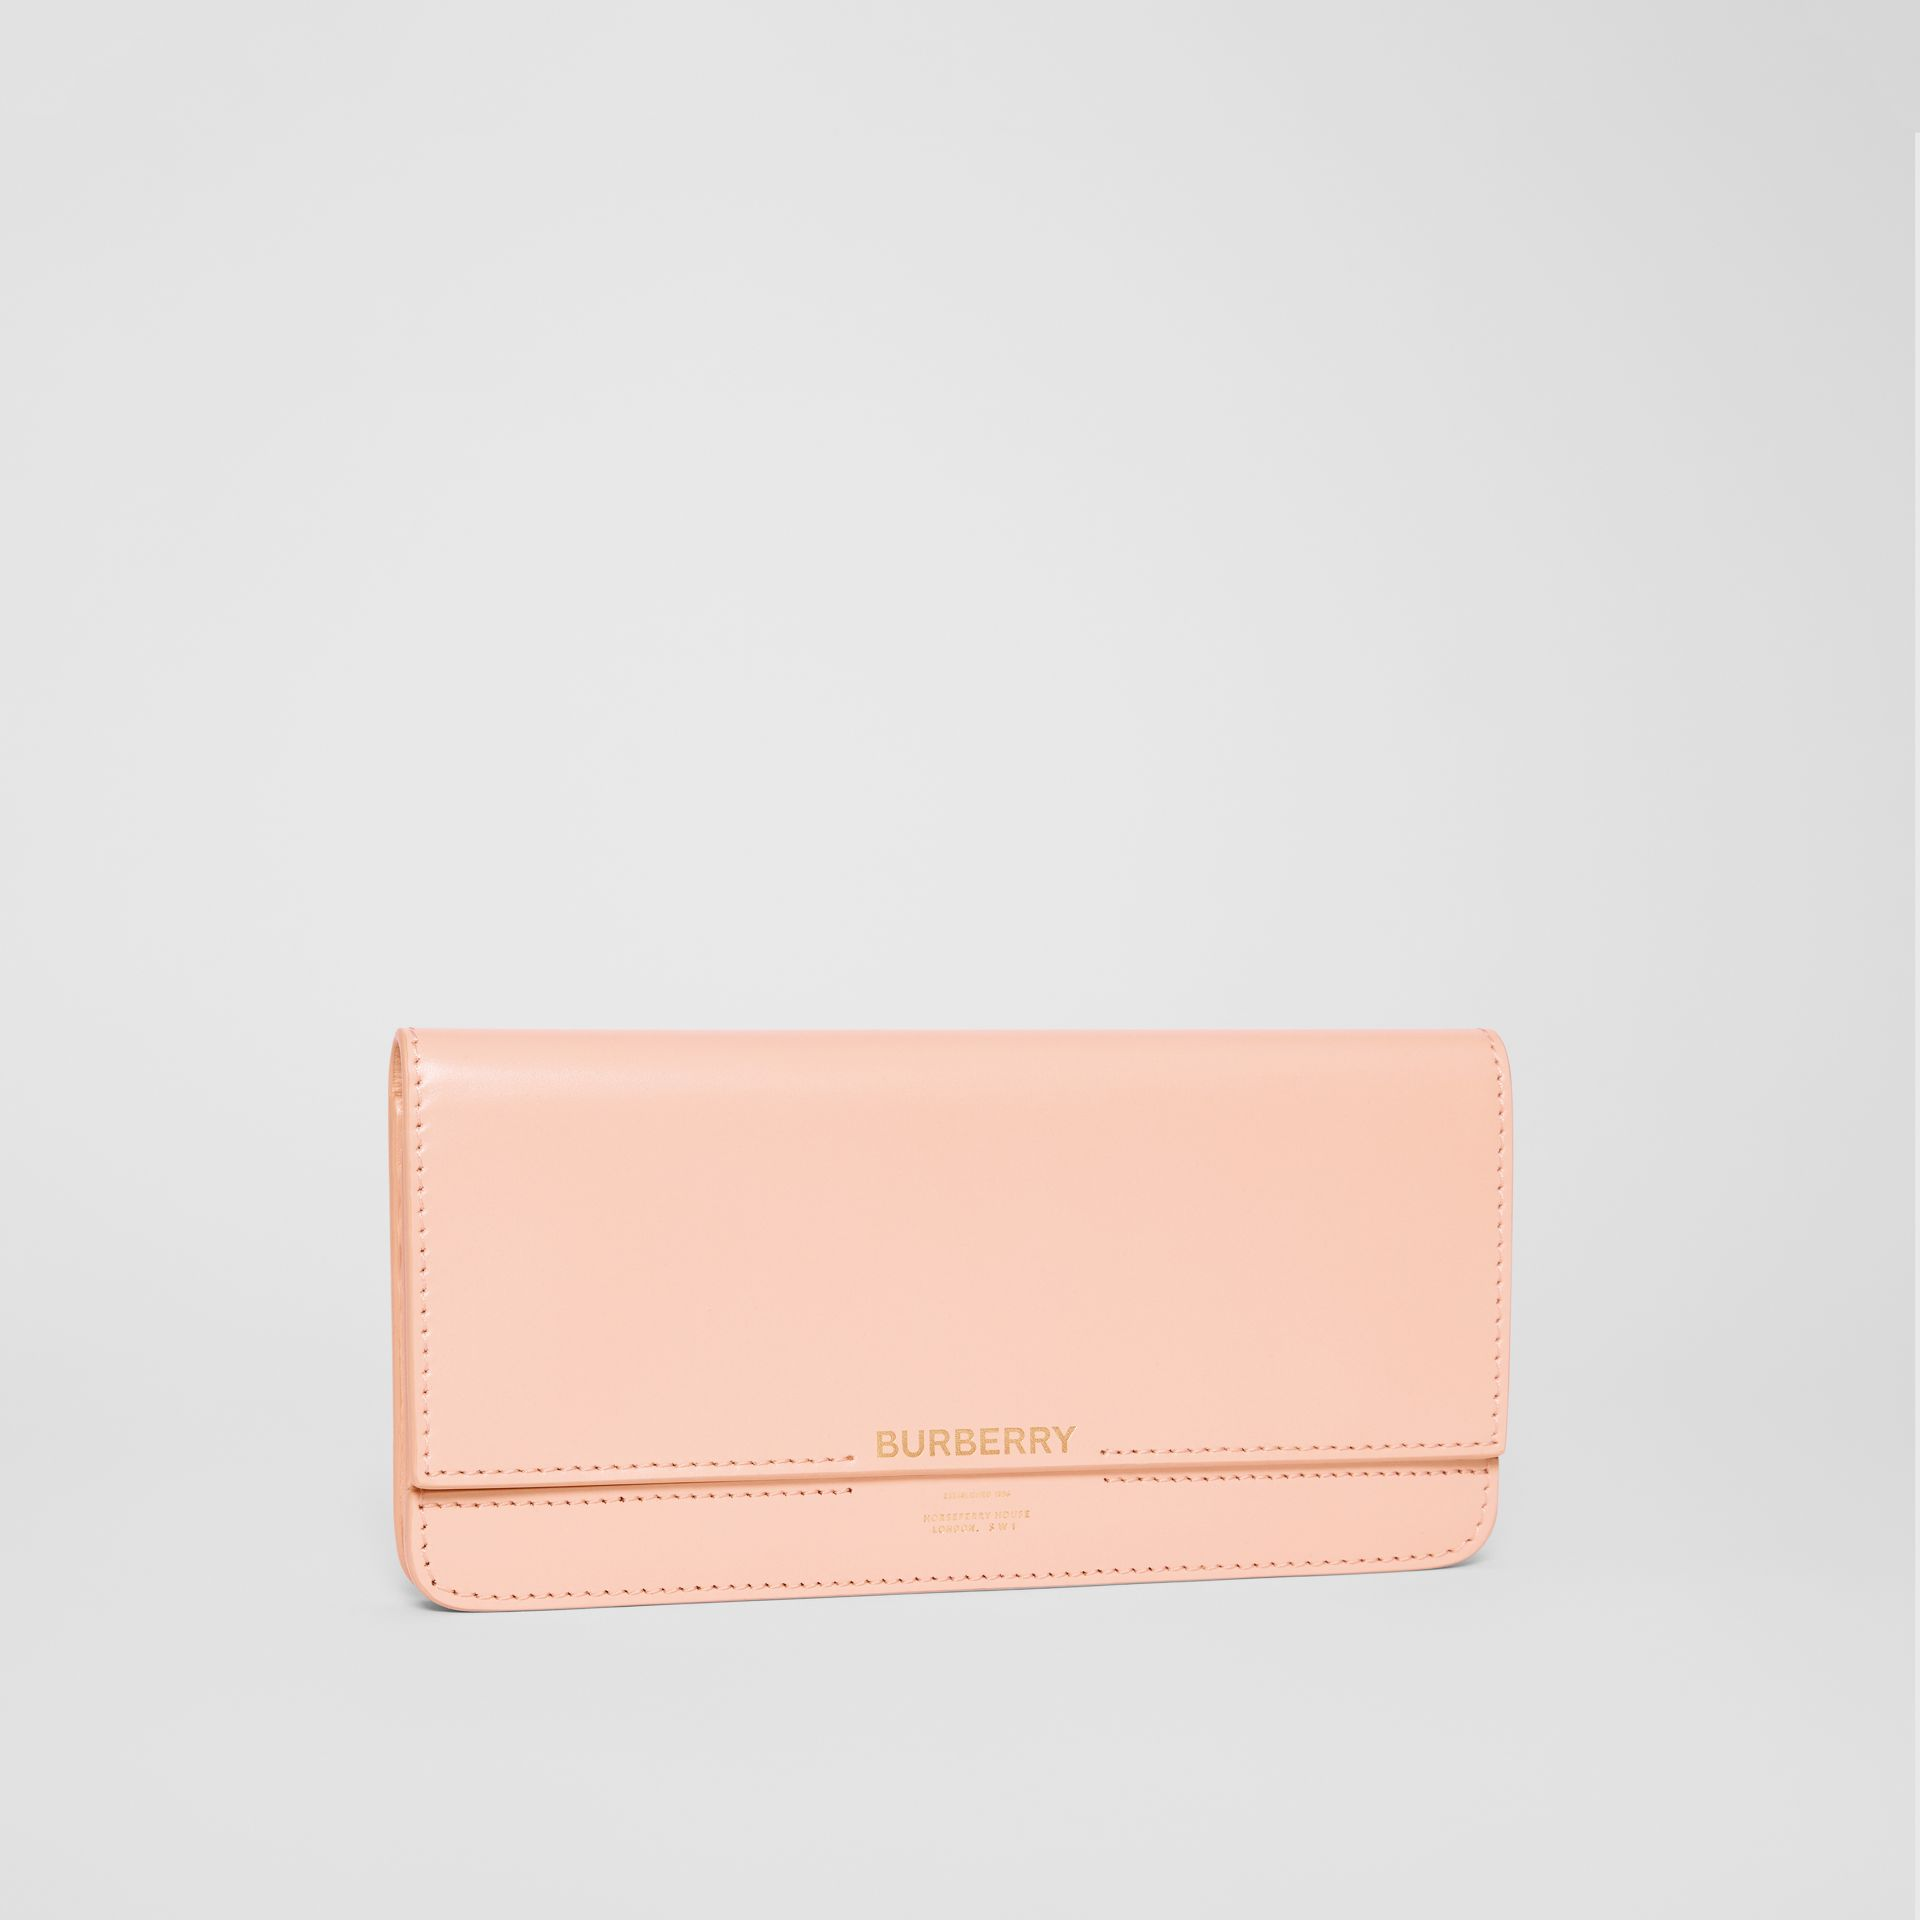 Horseferry Embossed Leather Continental Wallet in Blush Pink - Women | Burberry United Kingdom - gallery image 4